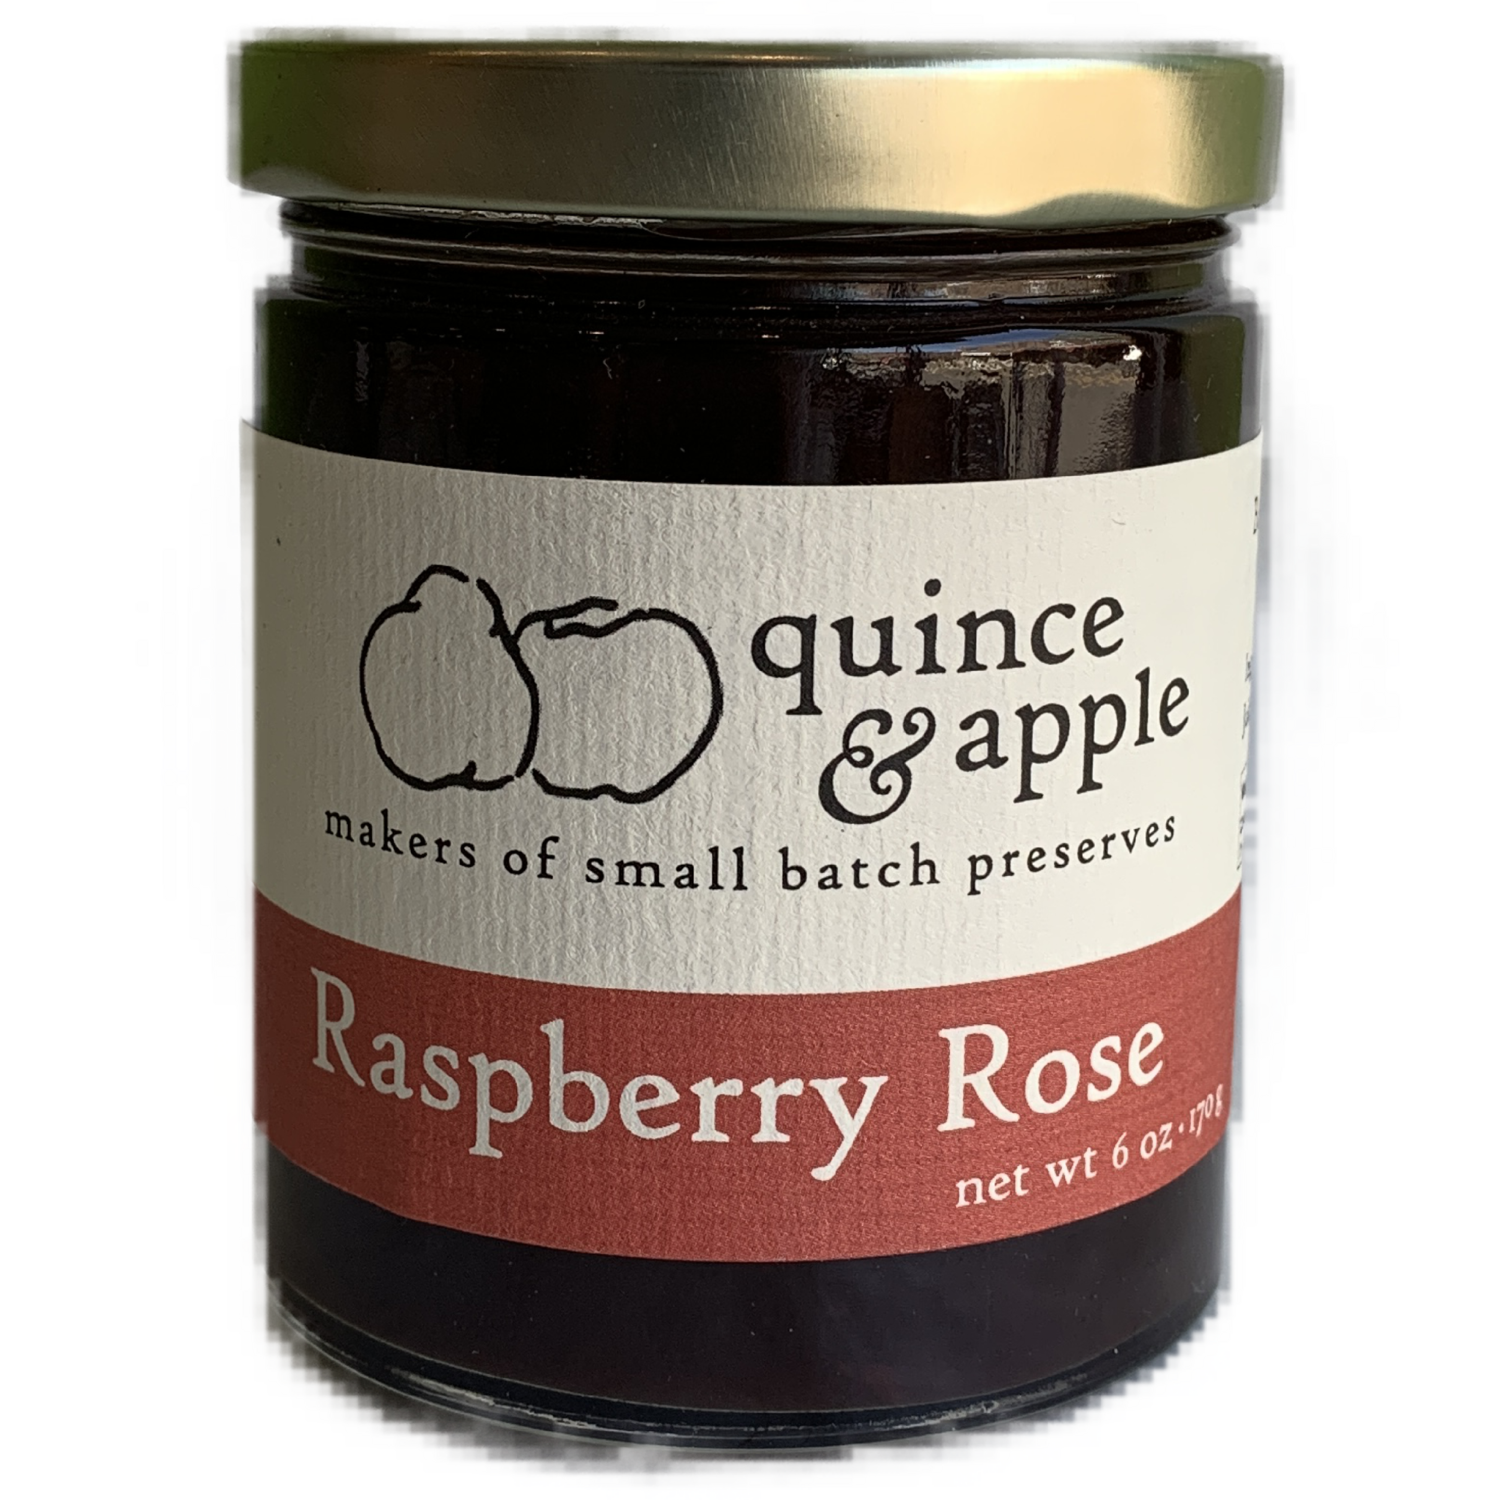 Quince & apple  Raspberry Rose